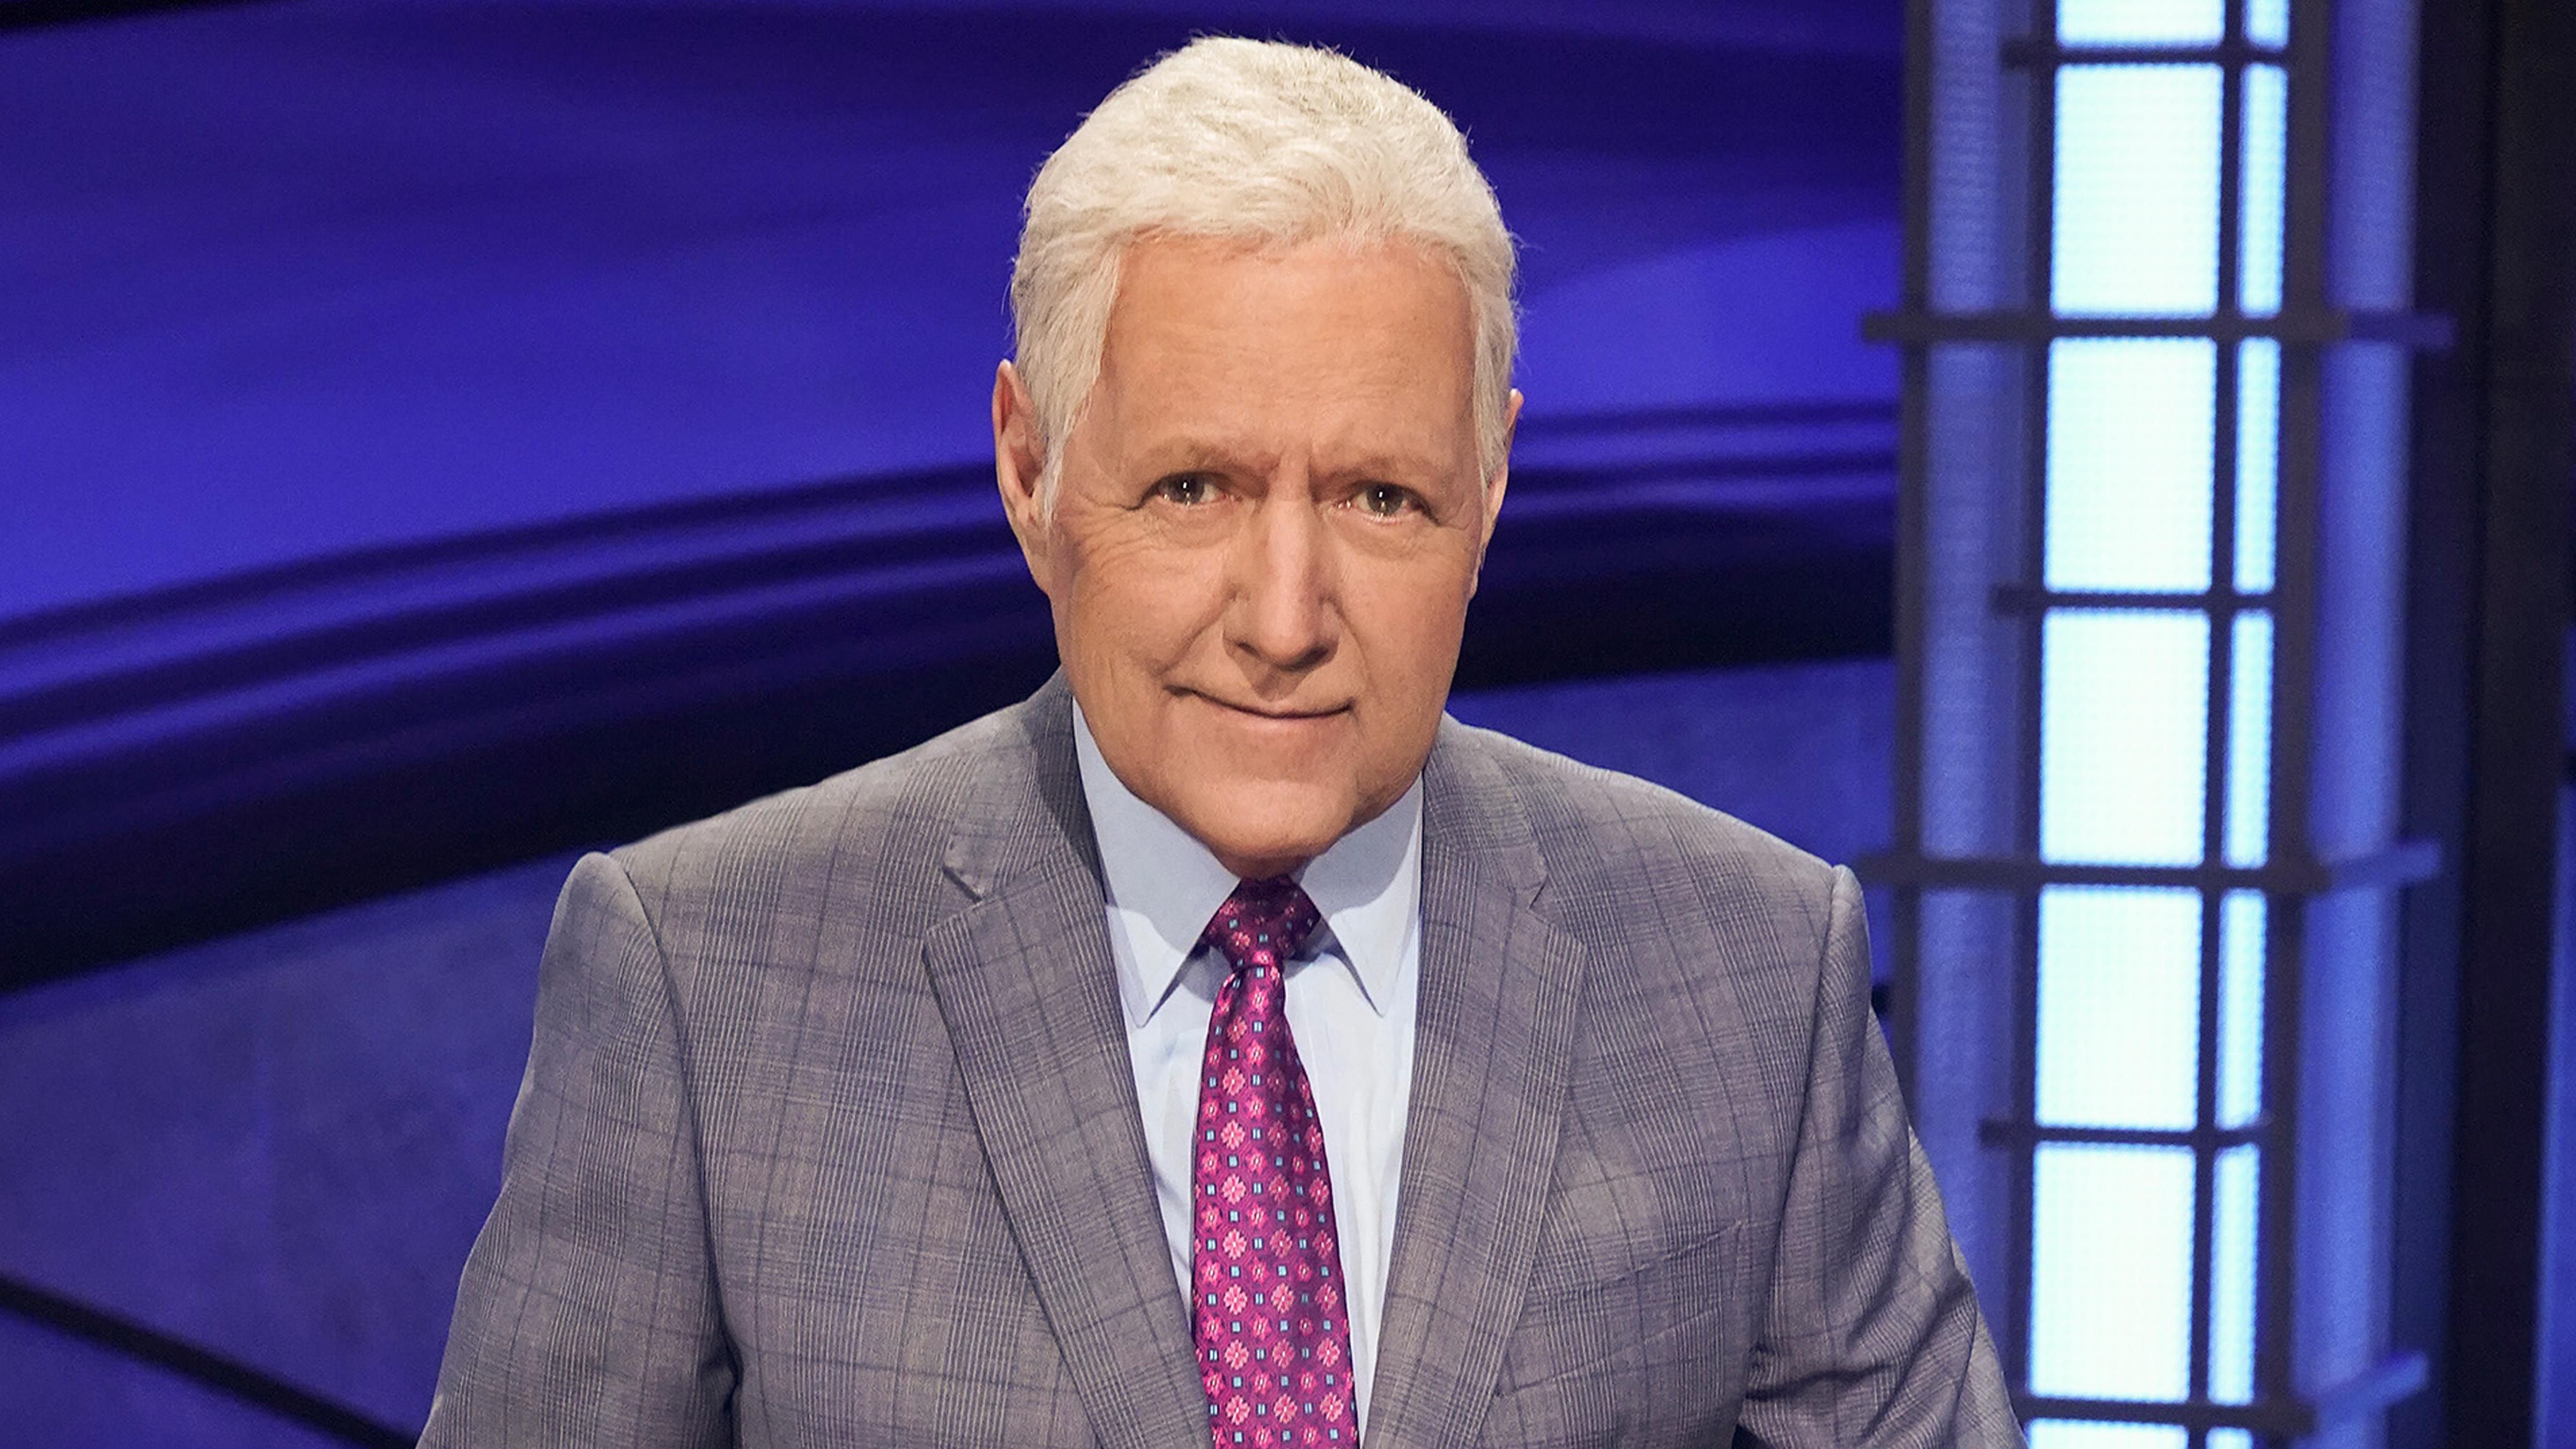 'Jeopardy!' Has Apologized After Fans Call Out 'Gross' and 'Inaccurate' Misinformation